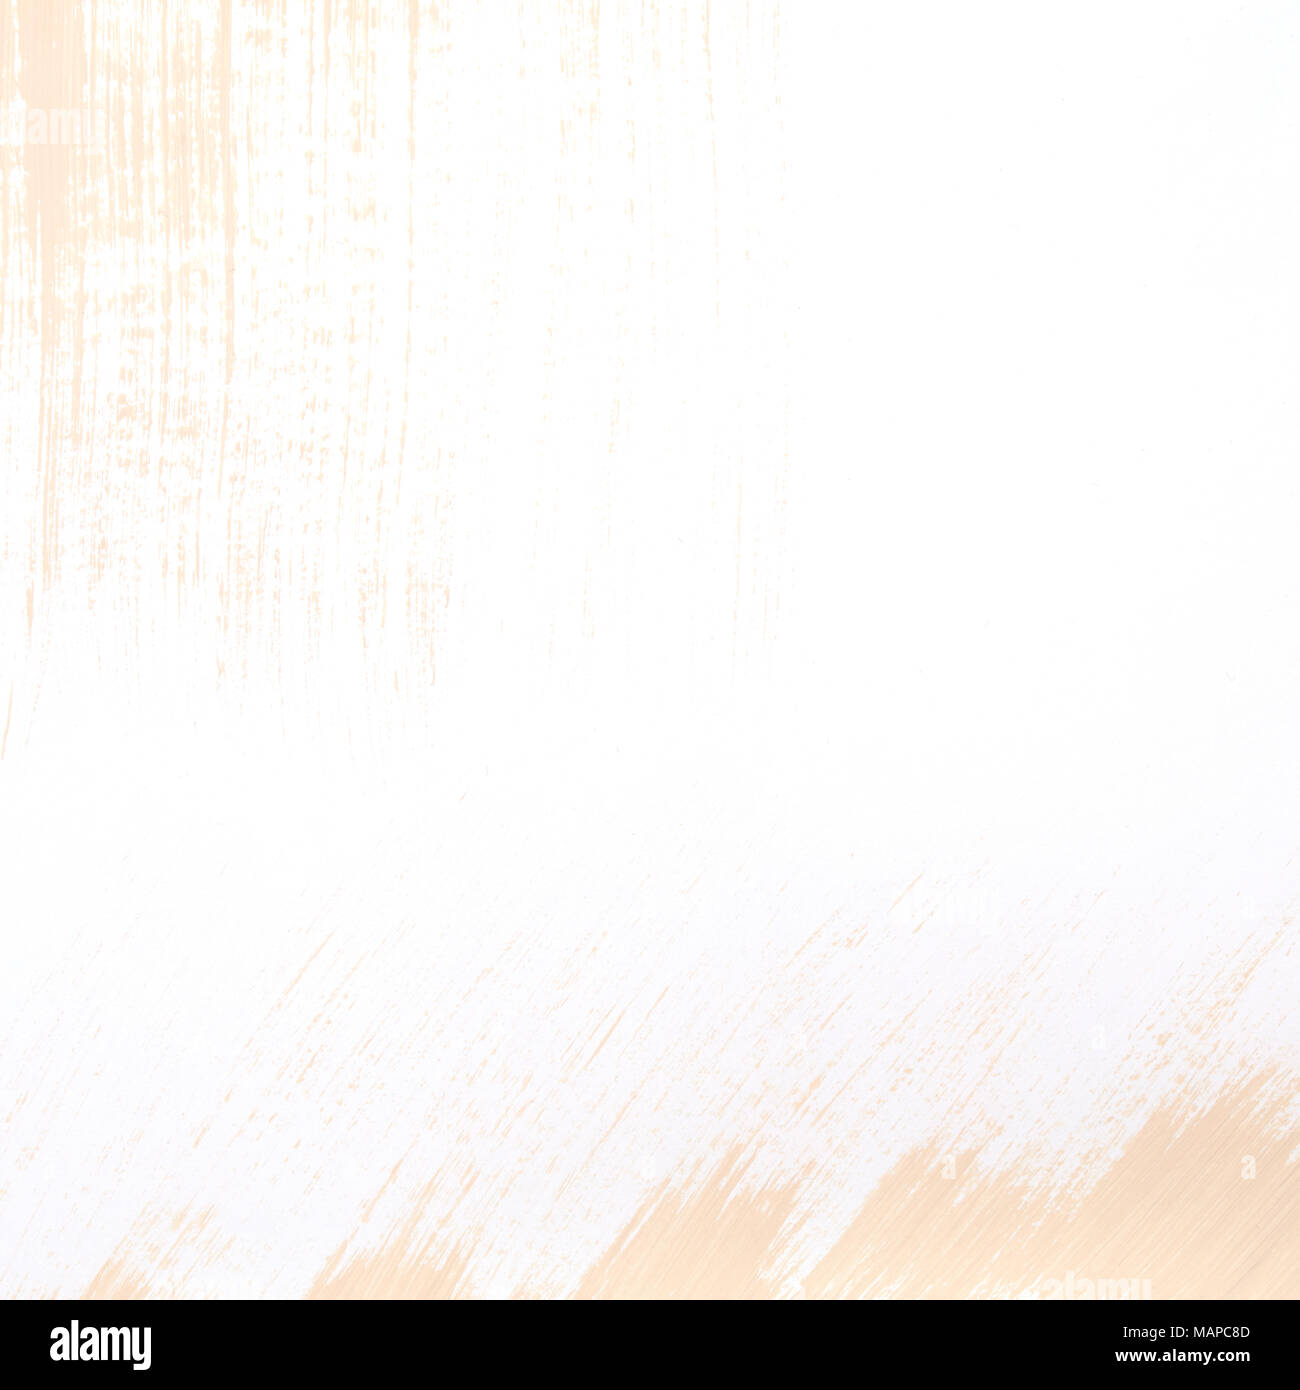 Paint brush stroke texture background in pastel colors with copy space available. - Stock Image